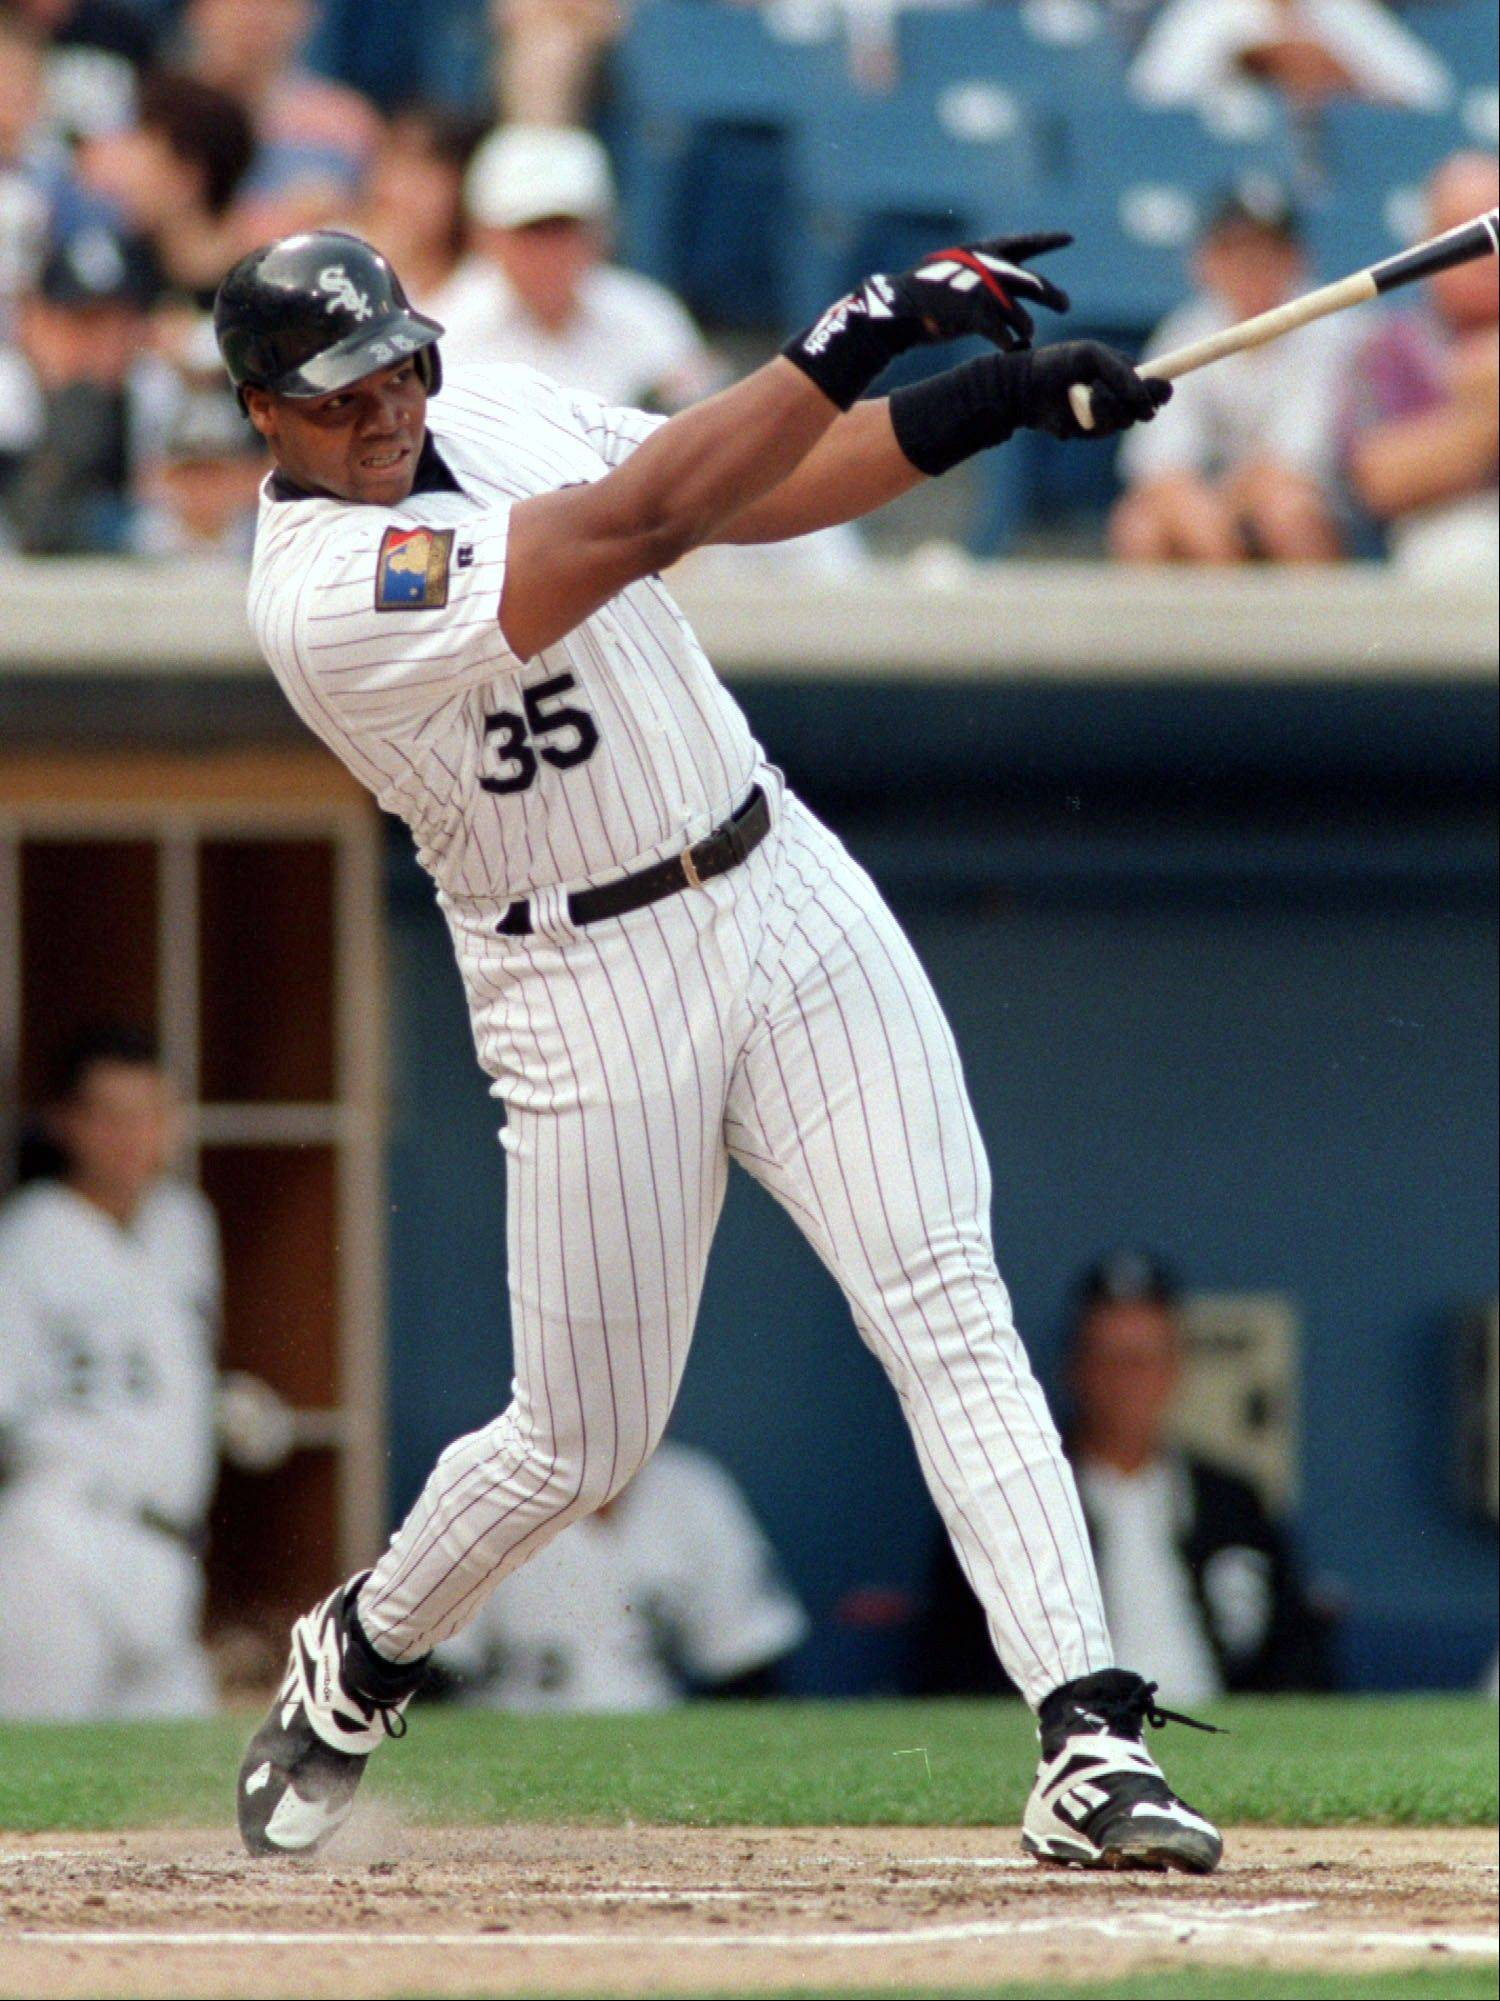 In this July 30, 1994 file photo, Chicago White Sox's Frank Thomas follows through on a home run against the Seattle Mariners in Chicago. Thomas is among three high-profile players on the baseball Hall of Fame ballot for the first time. The votes will be announced Wednesday, Jan. 8, 2014.